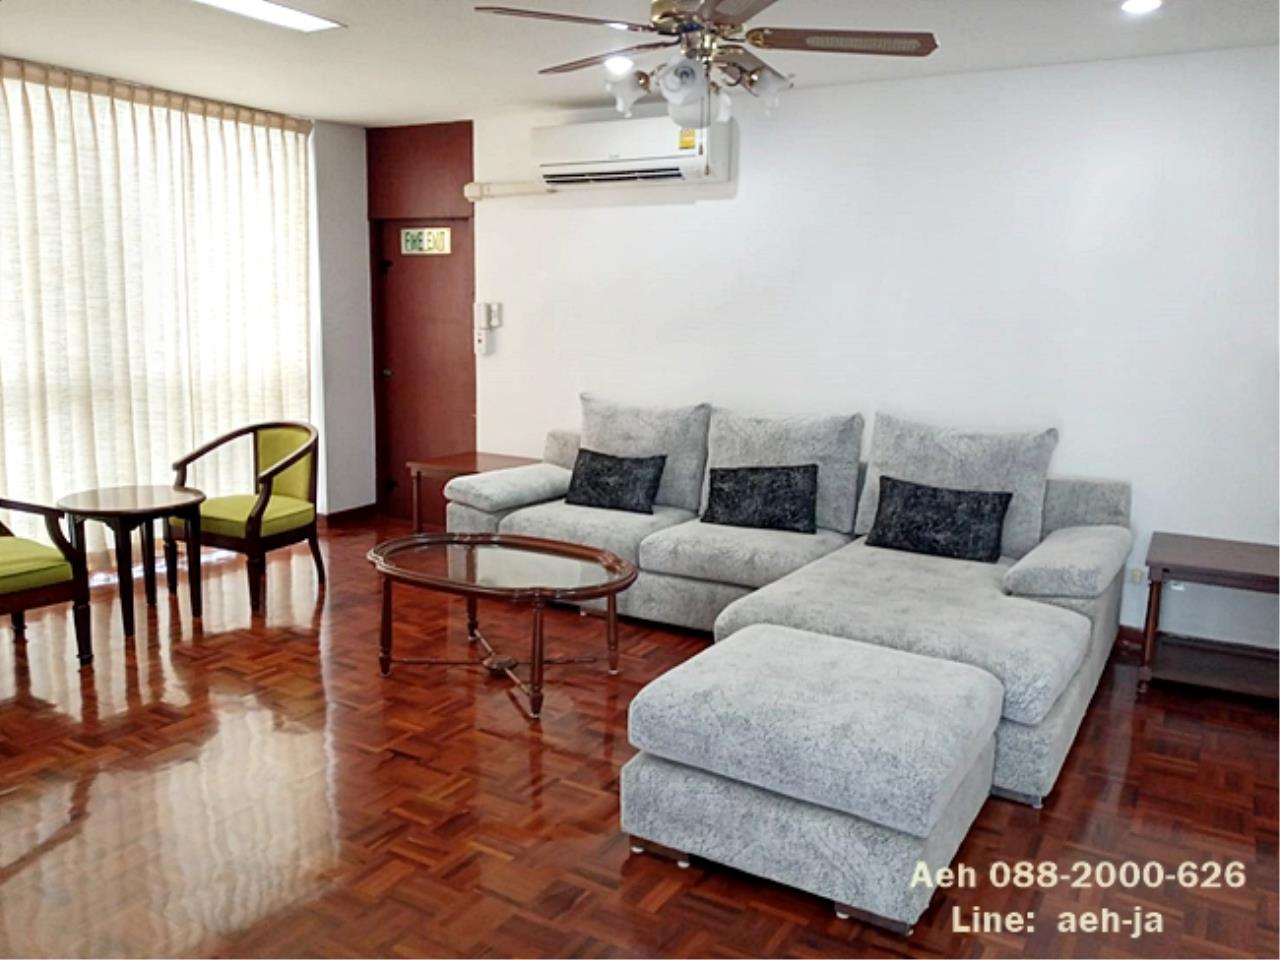 Agent - Aeh Pattanapaisal Agency's Pet Friendly!! Tubtim Mansion, 2 bedrooms for rent, BTS Phrom Phong THB 45,000/month 1